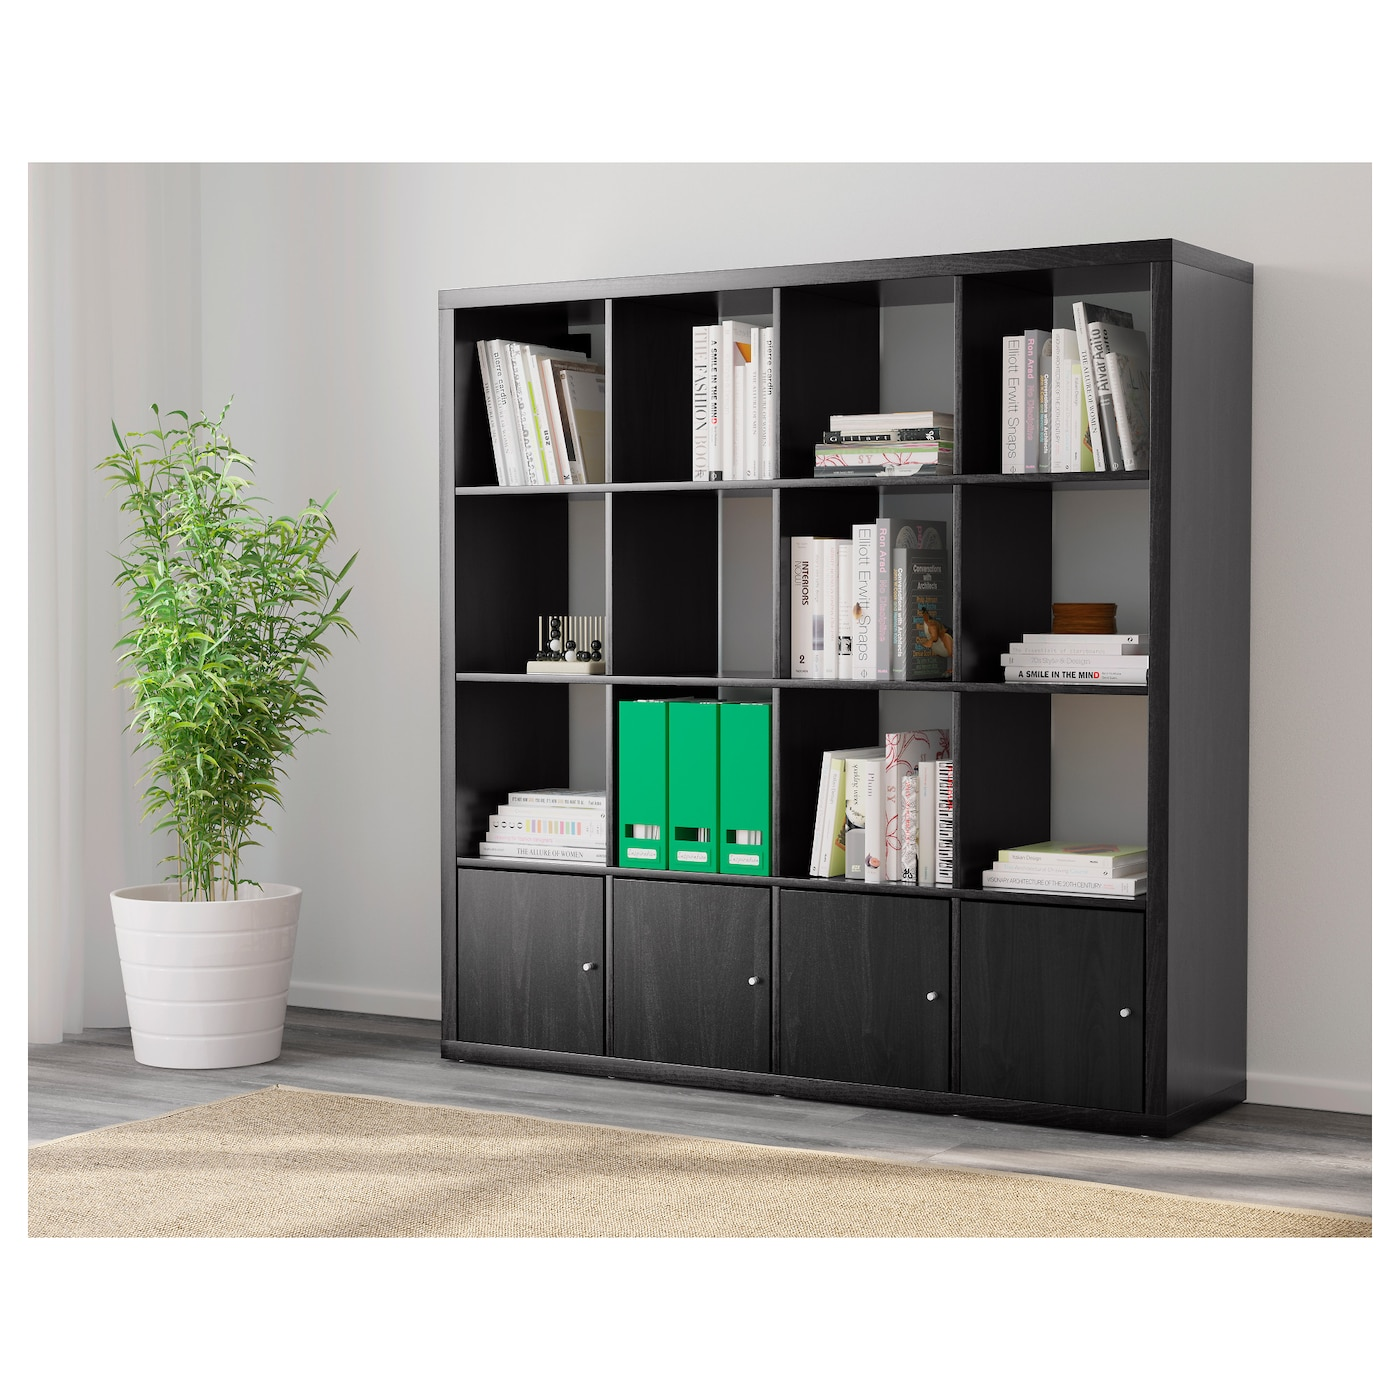 kallax shelving unit with 4 inserts black brown 147 x 147 cm ikea. Black Bedroom Furniture Sets. Home Design Ideas